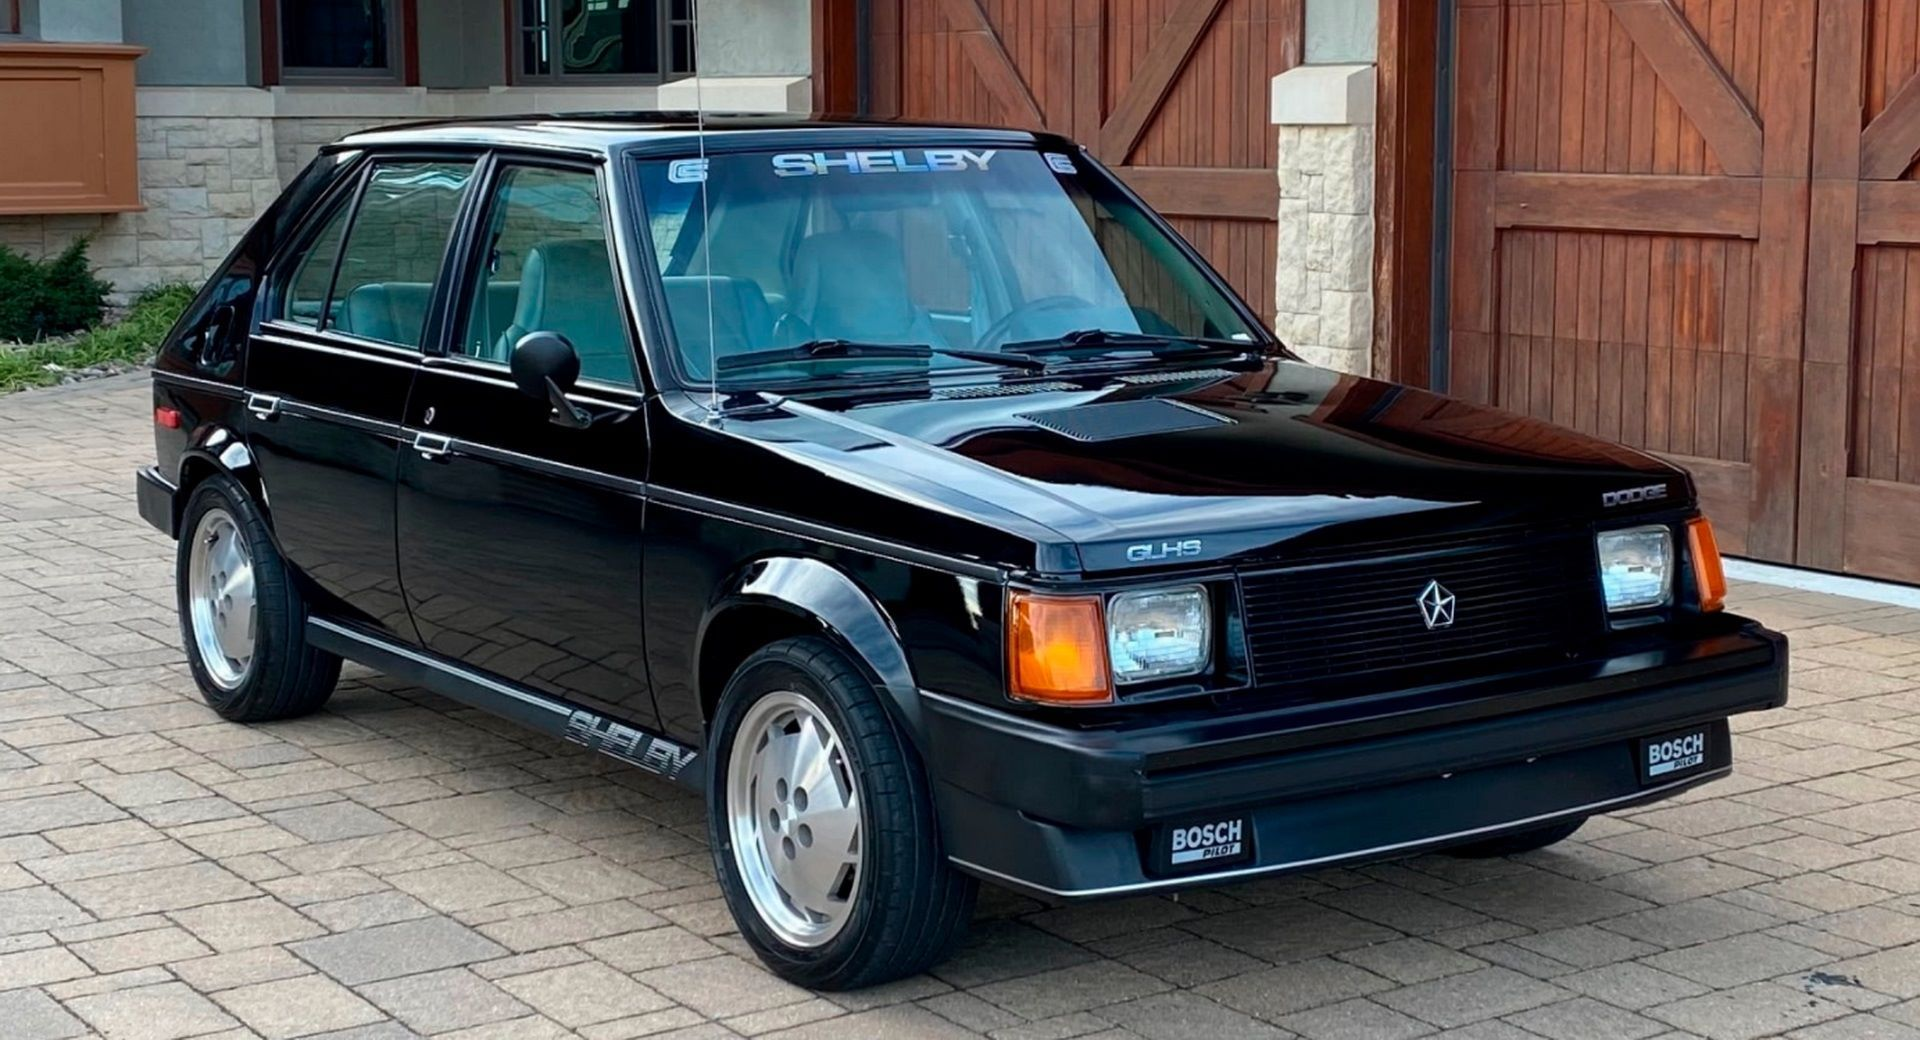 Dodge-Omni-GLHS-Carroll-Shelby-1